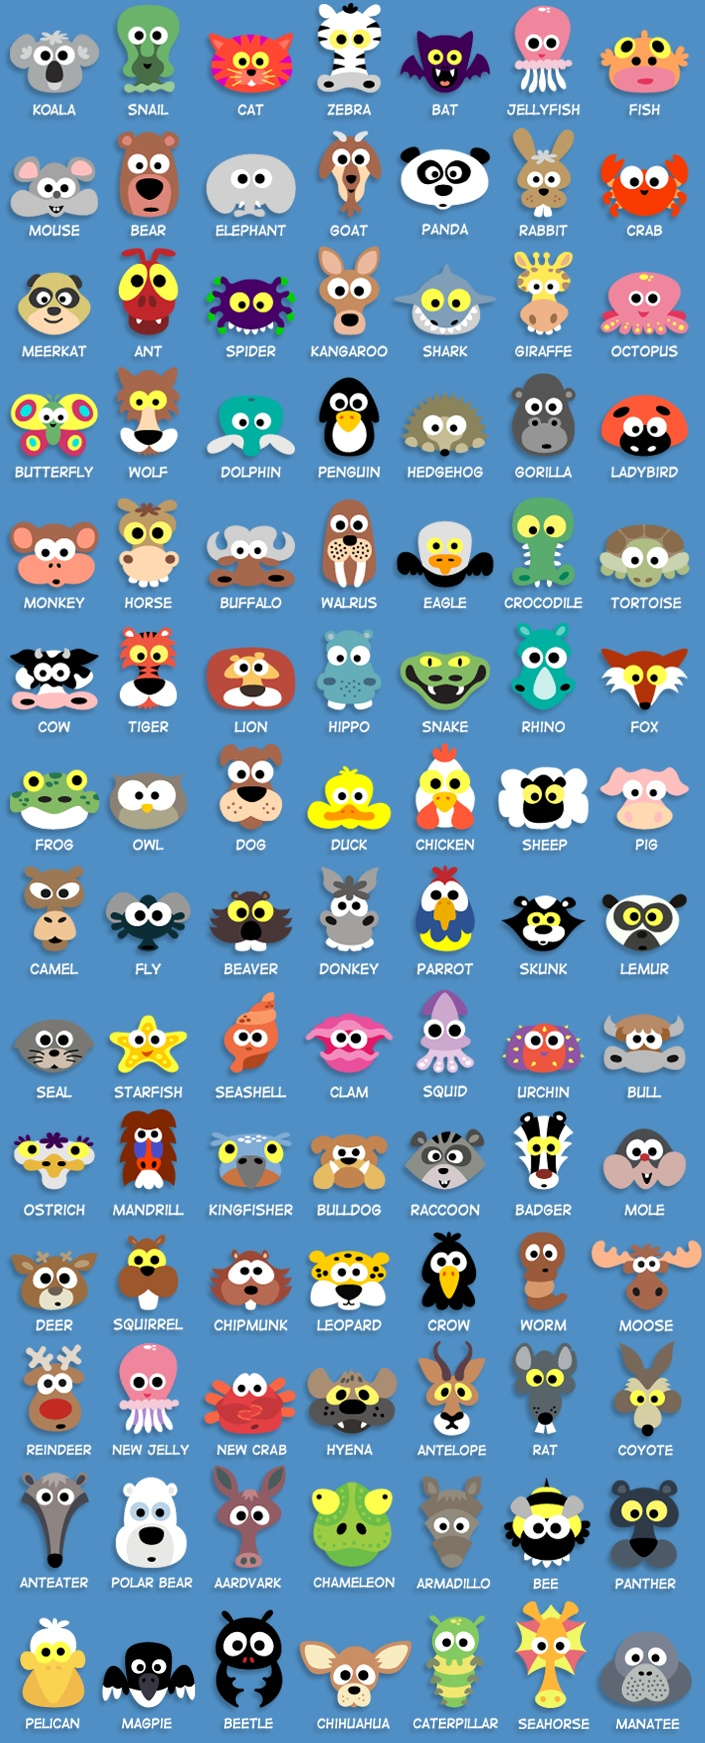 All the animal masks so far